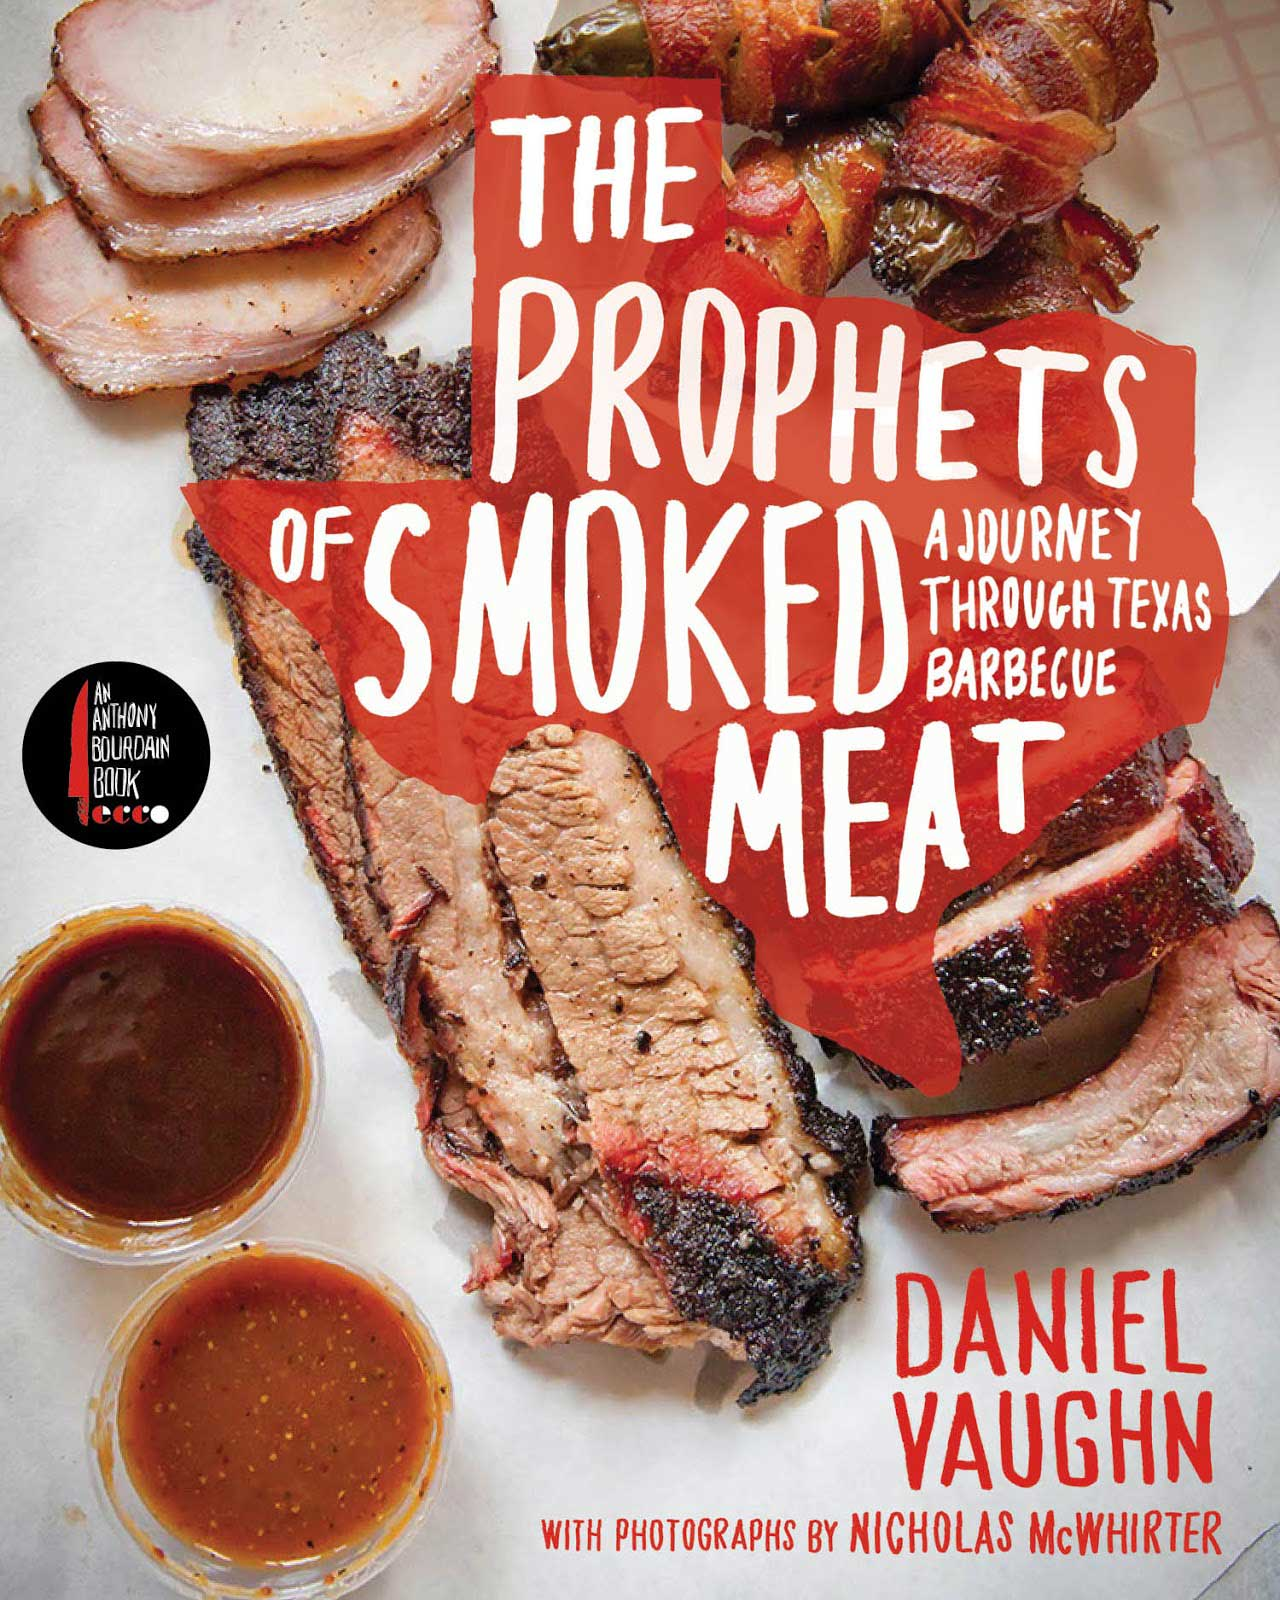 Prophets of Smoked Meat book cover